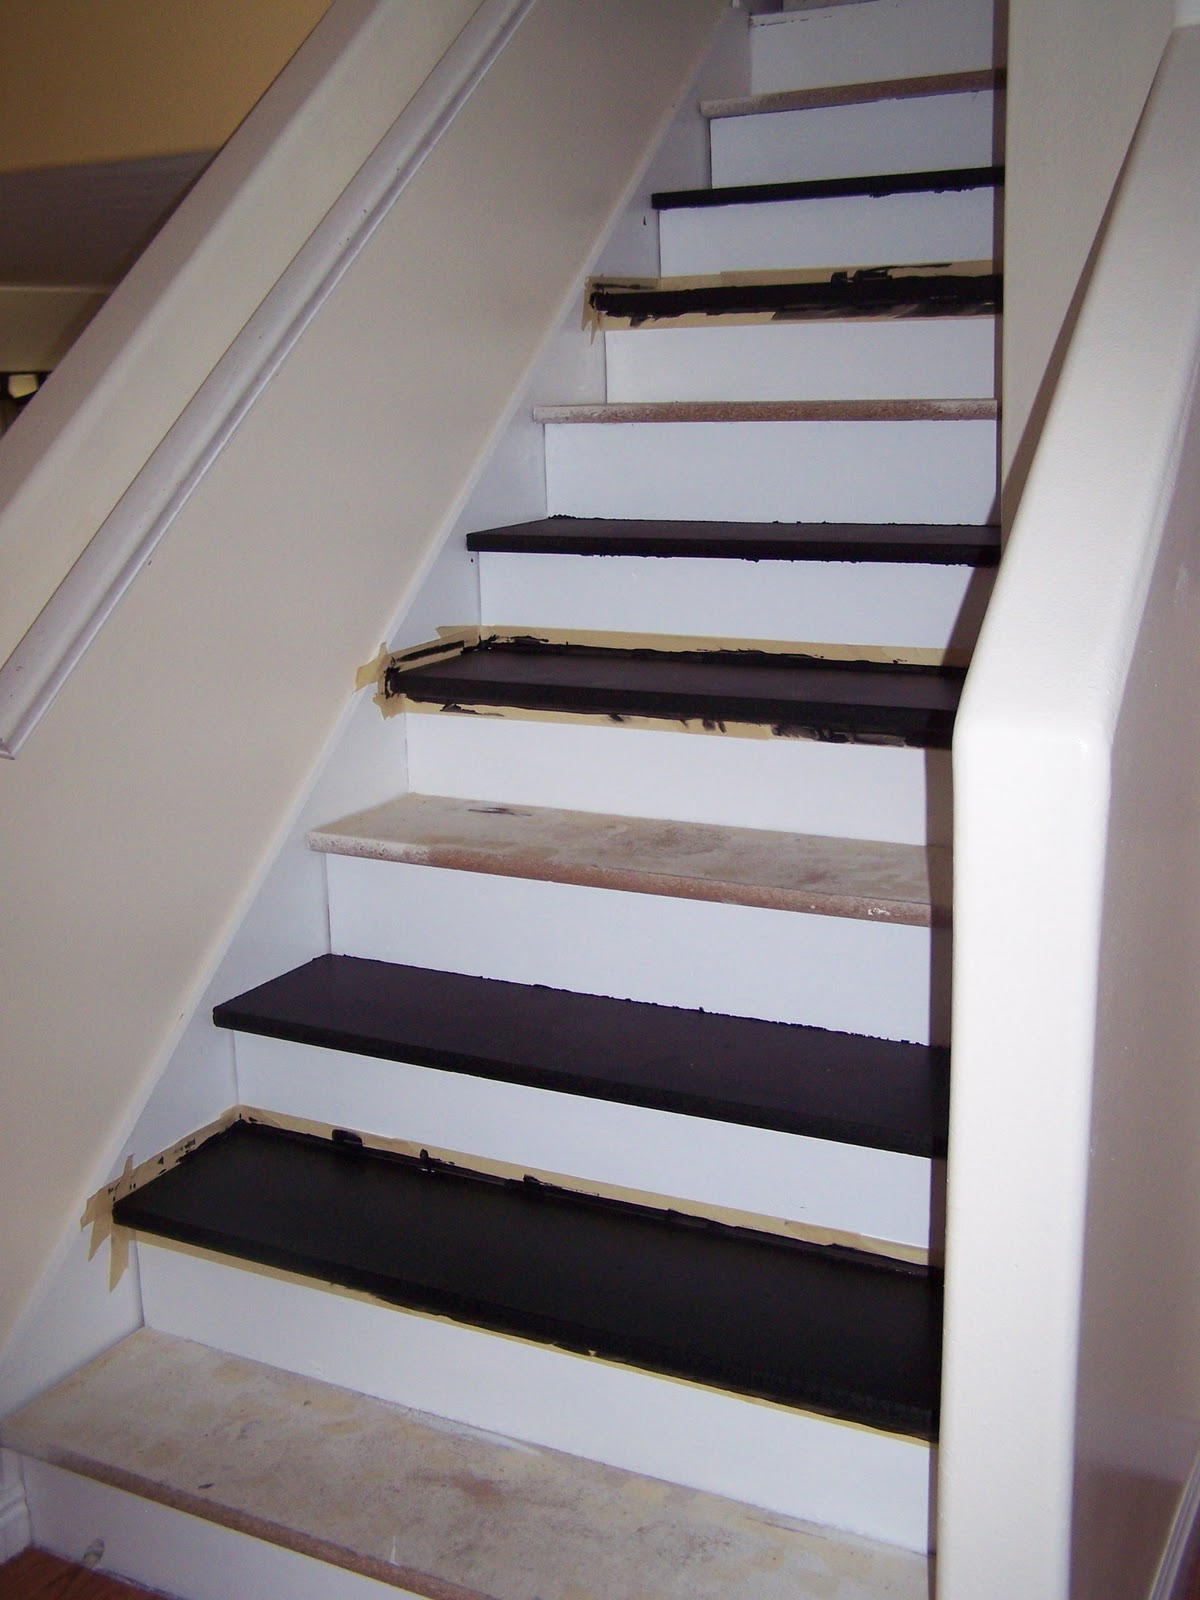 Cucumbers & Vinegar: Home Stairs REDO Project